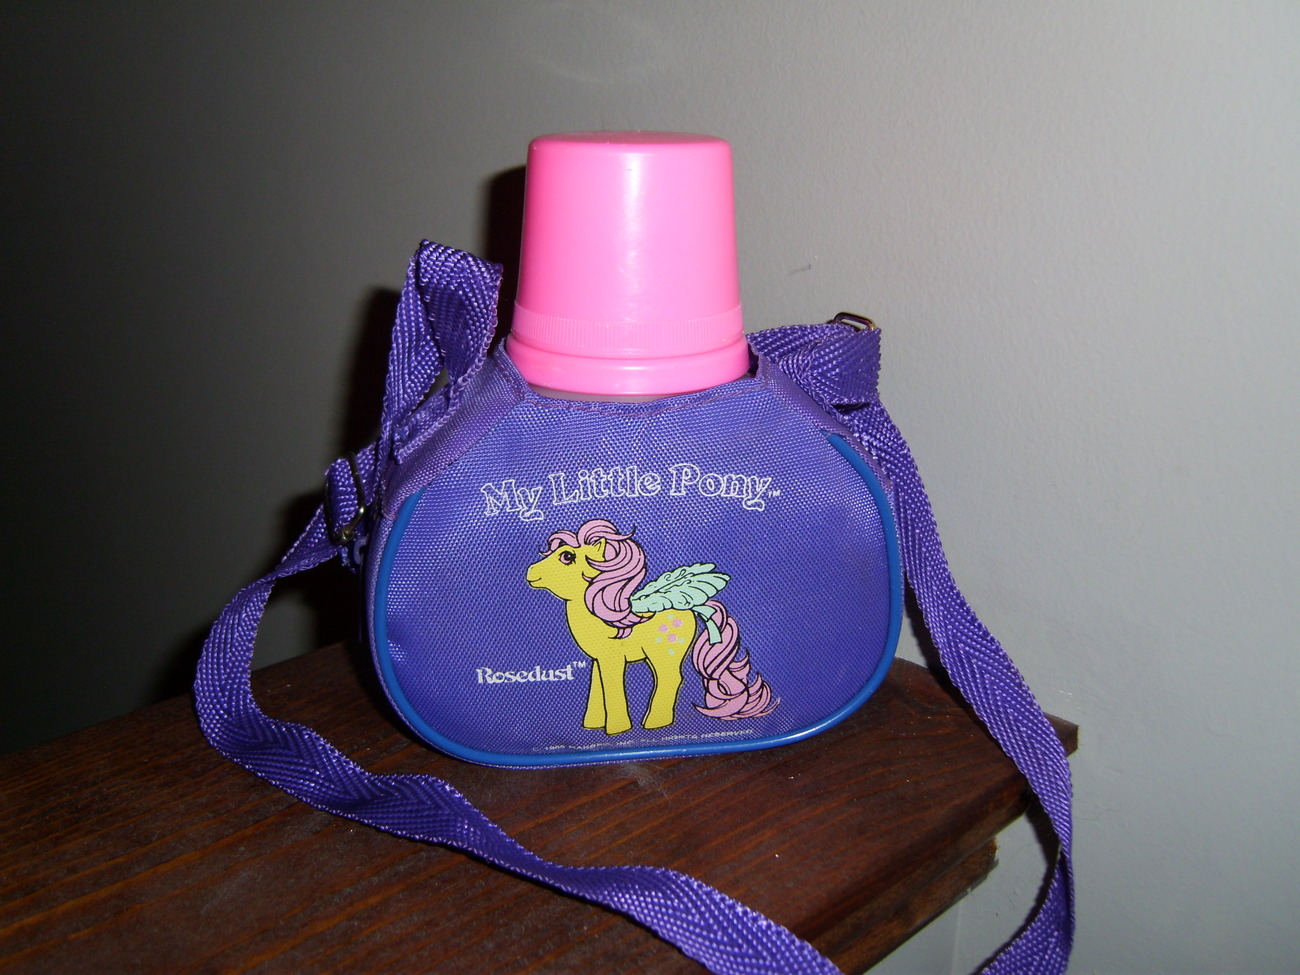 My Little Pony G1 purple canteen thermos with Rosedust